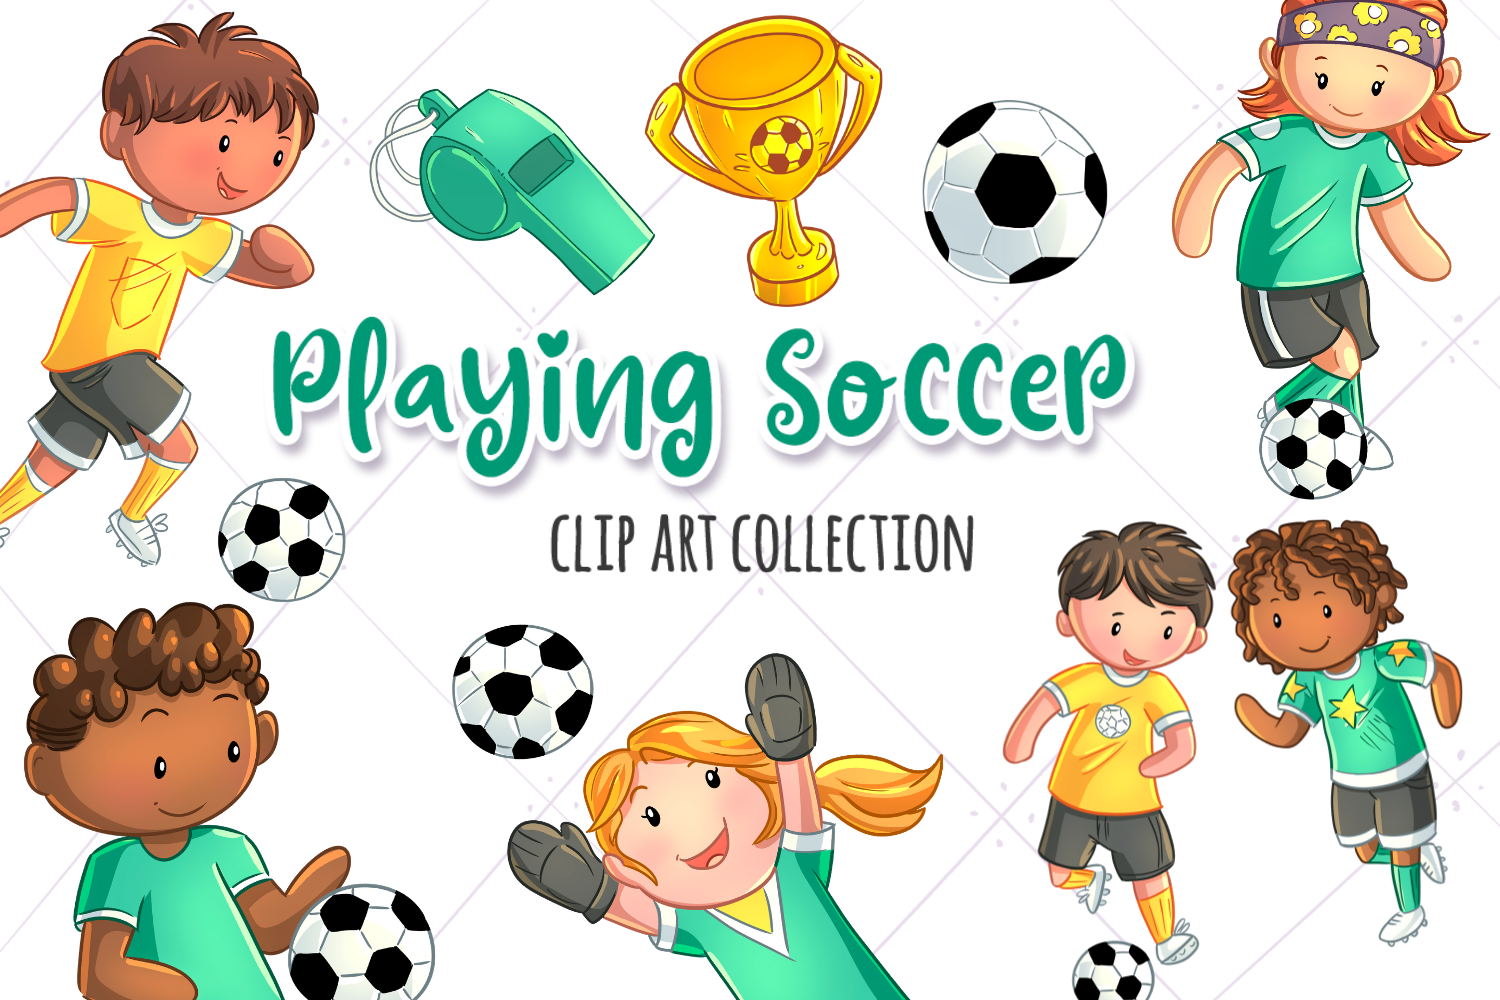 Kids Playing Soccer Clip Art Collection.